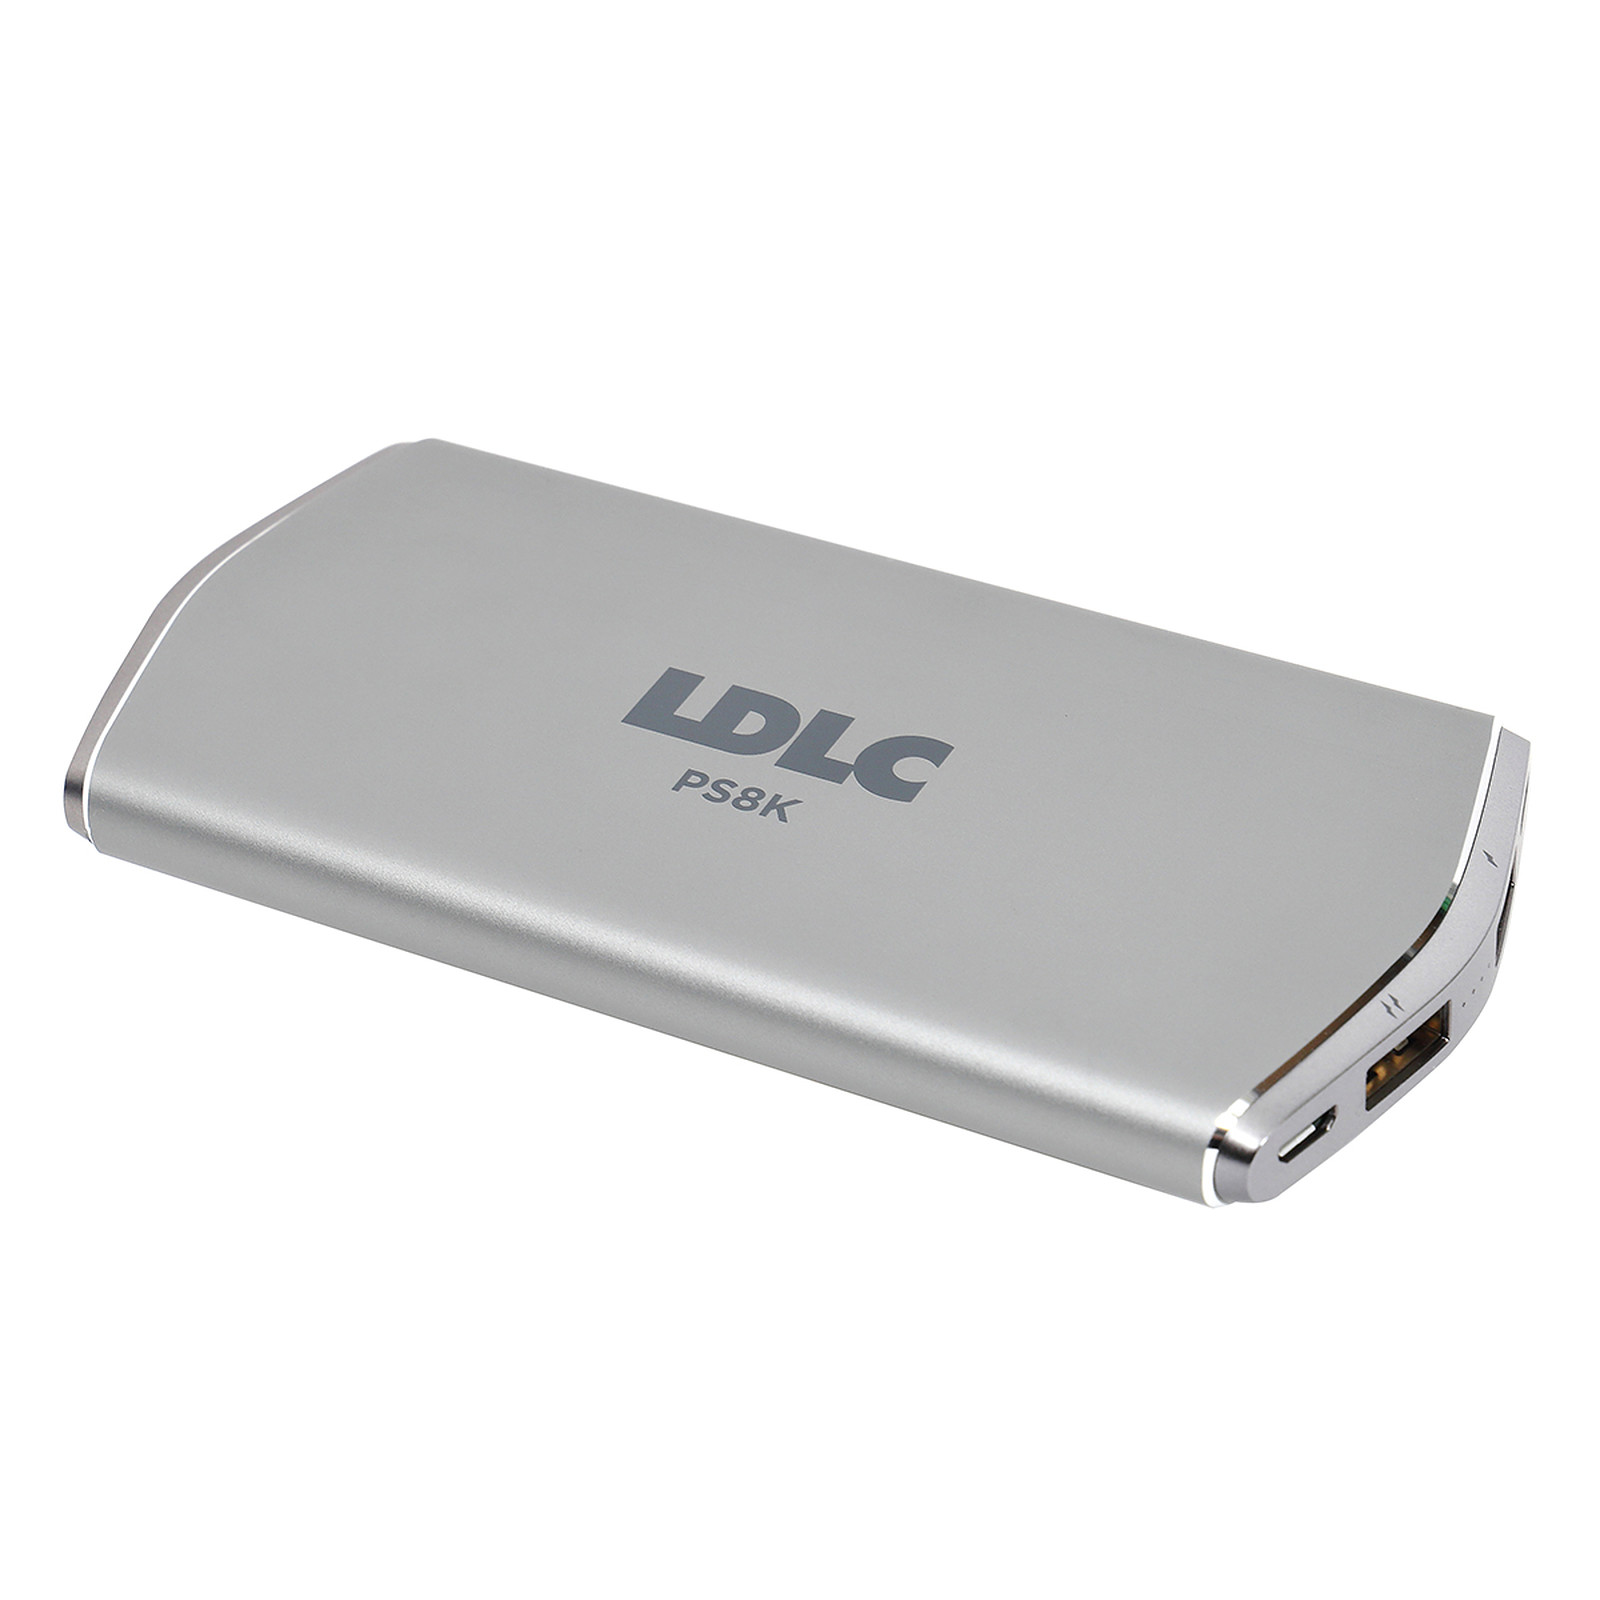 LDLC Power Bank PS8K